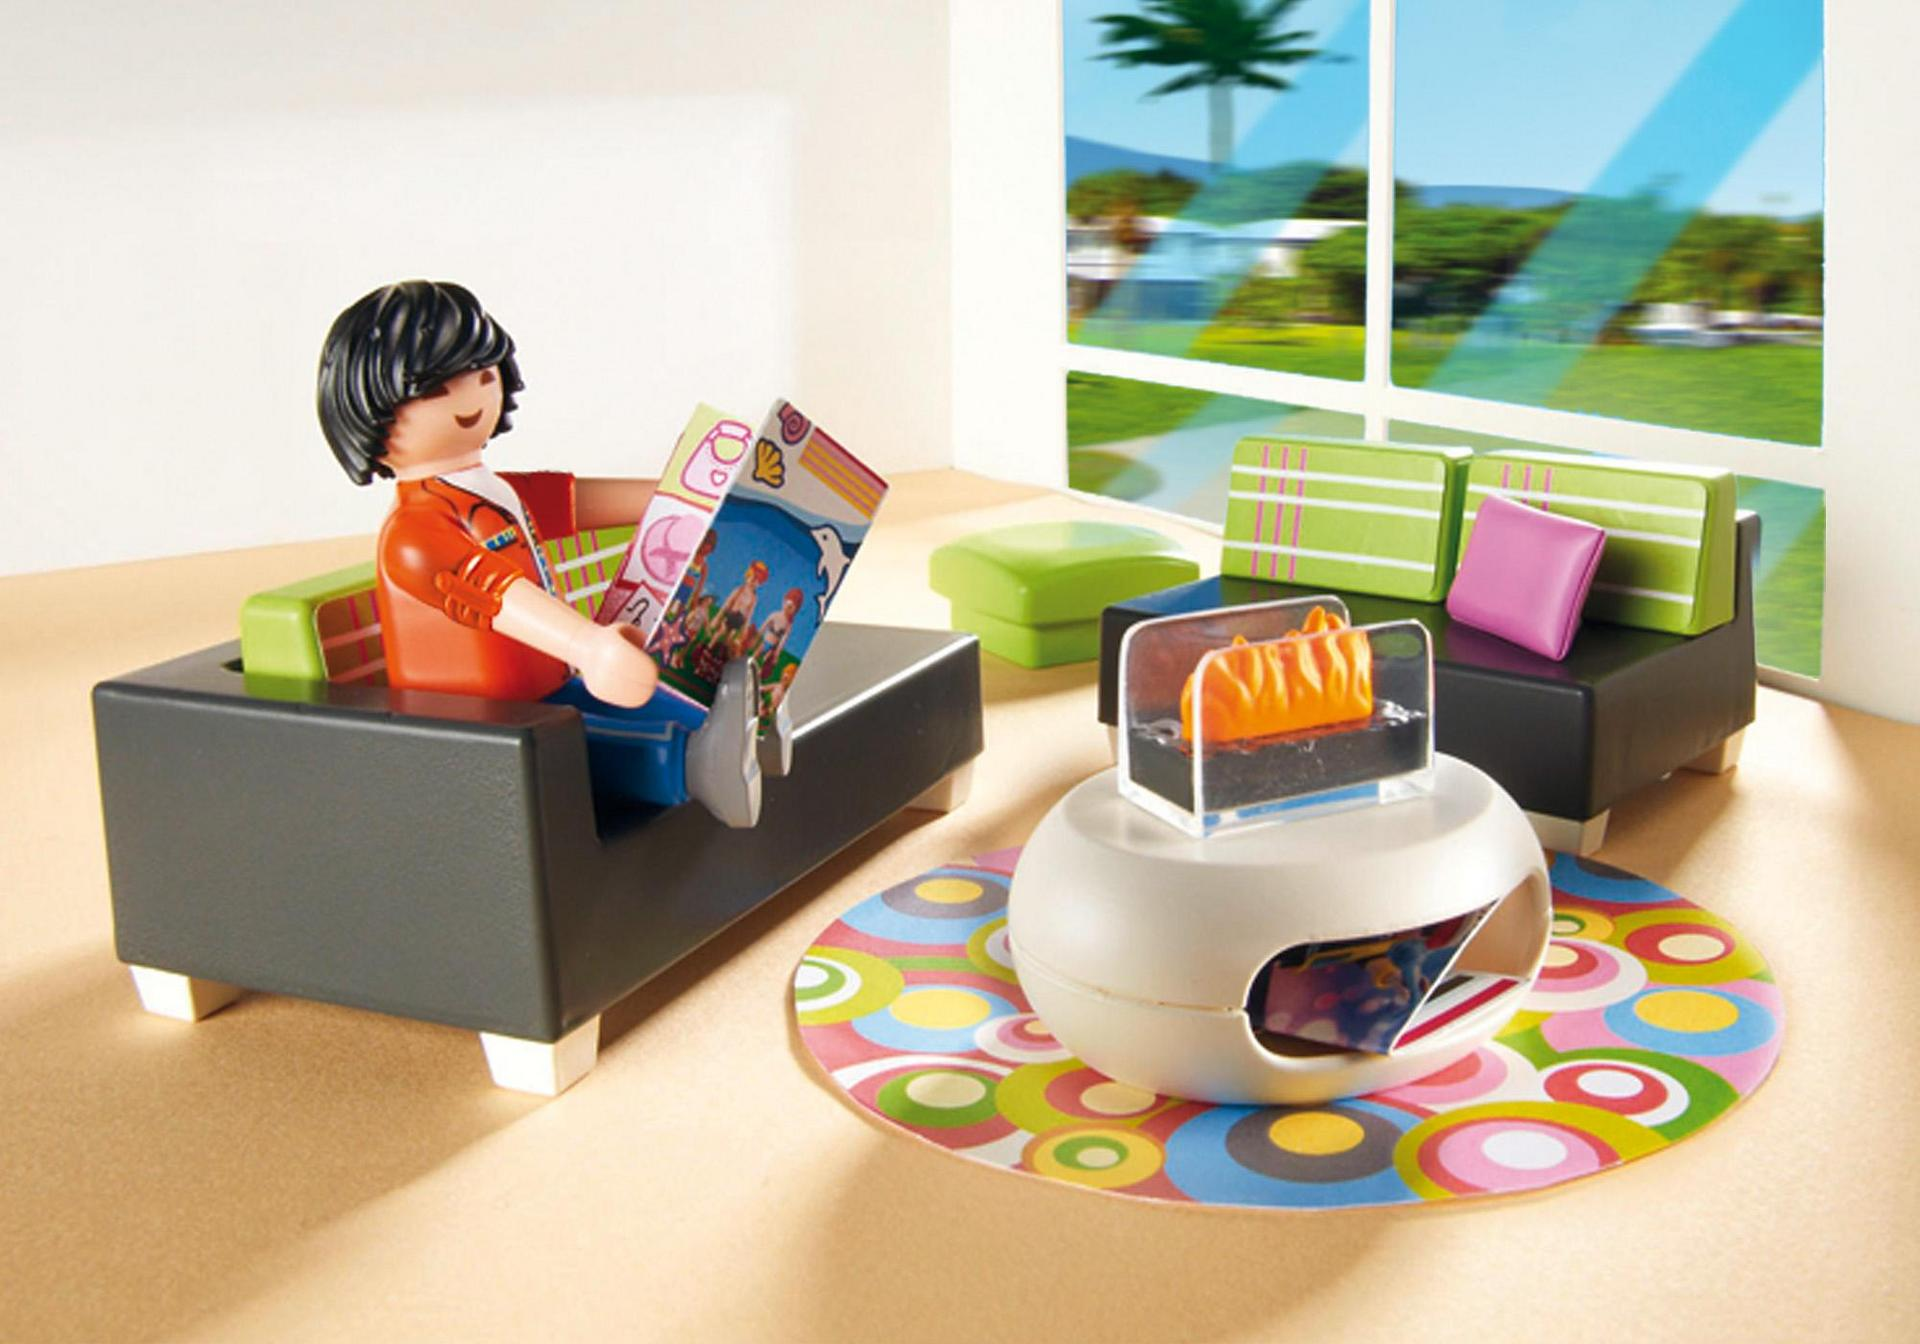 https://media.playmobil.com/i/playmobil/5584_product_extra2?locale=nl-BE,nl,*&$pdp_product_zoom_xl$&strip=true